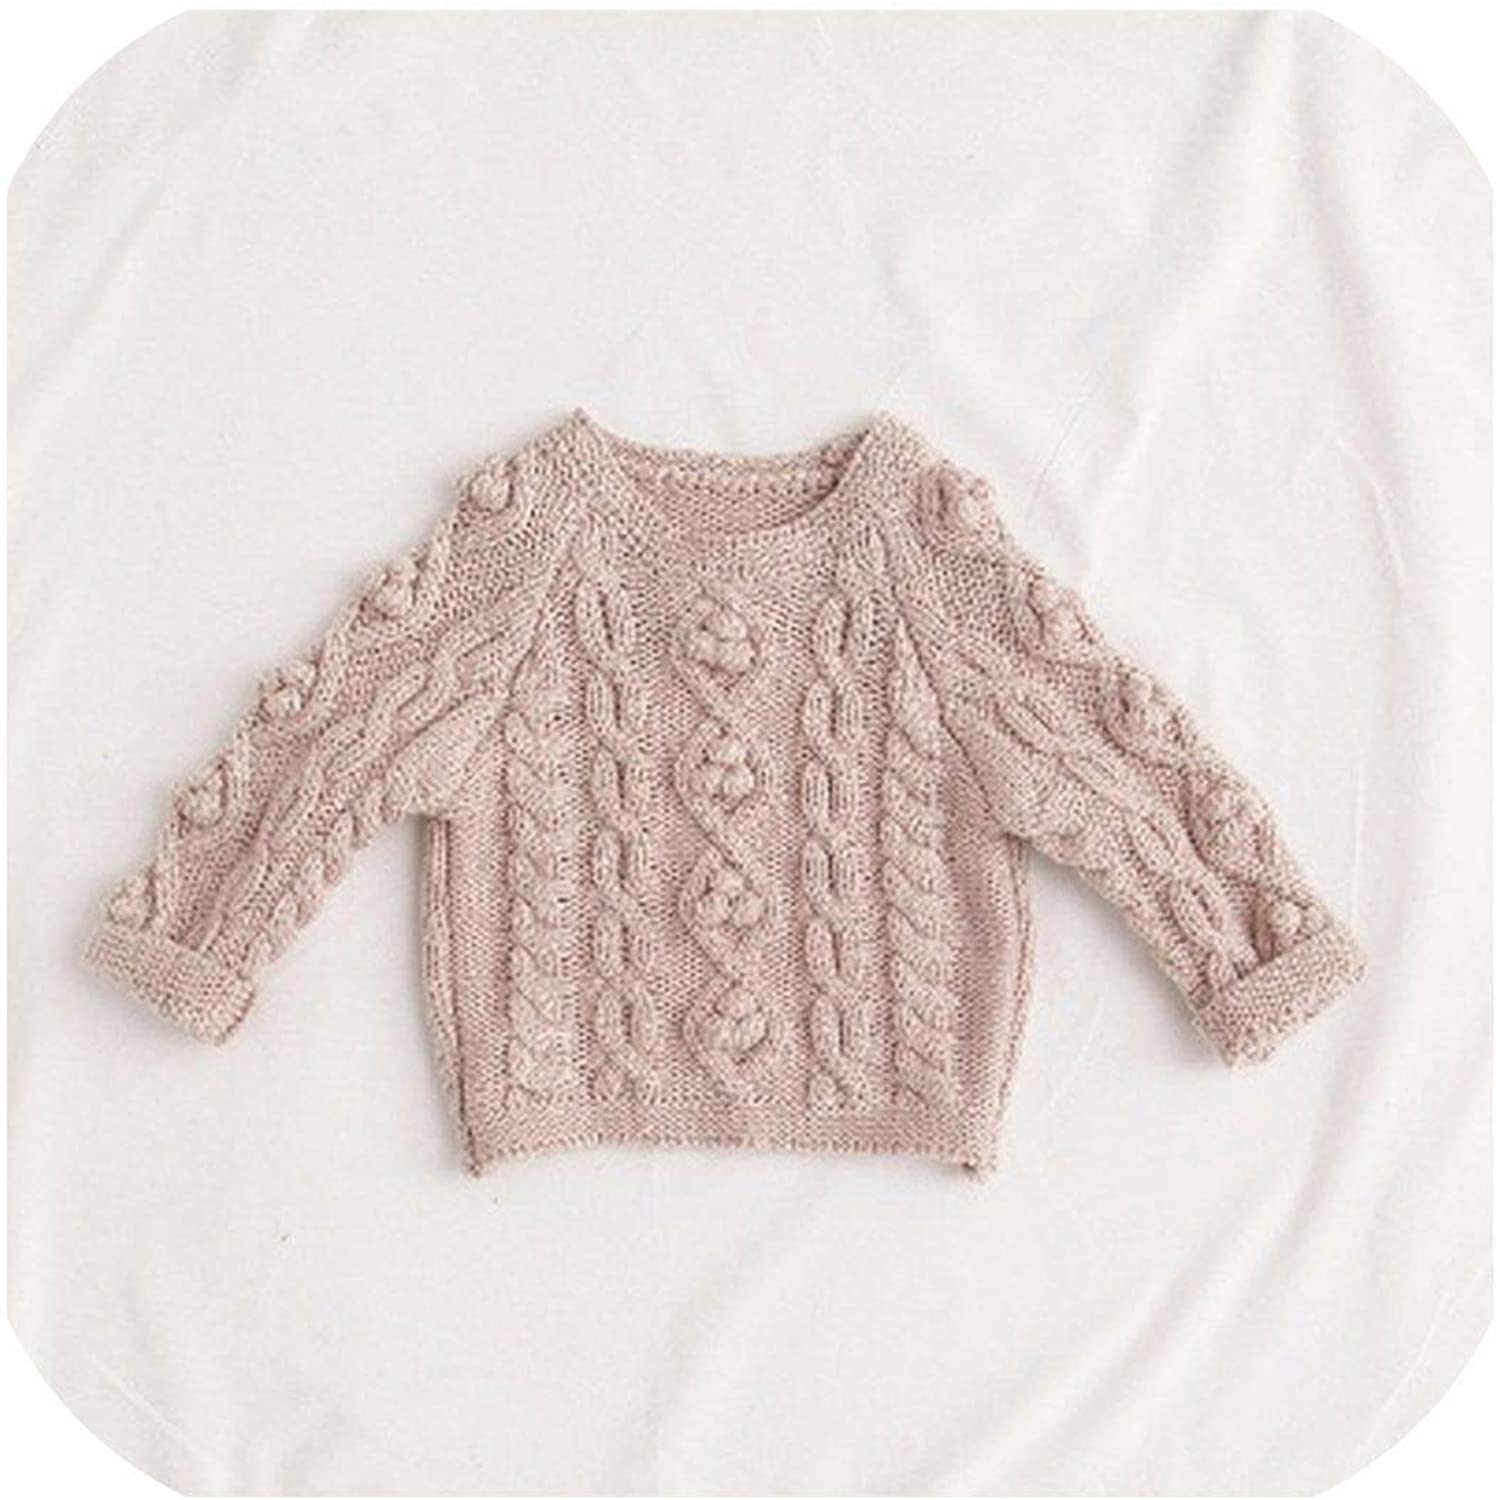 Toddlers knitted cardigan